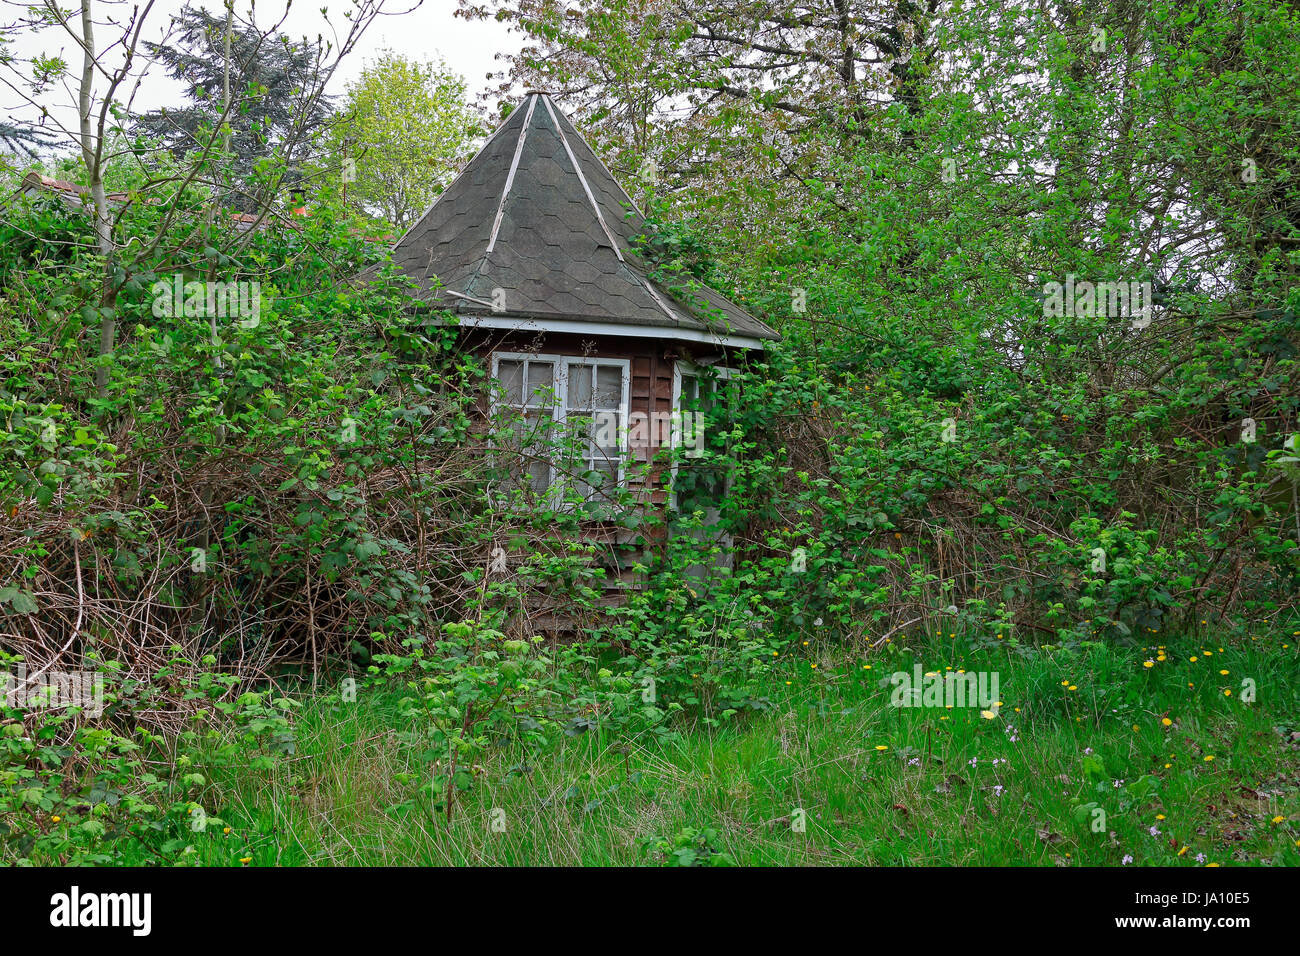 Small Gazebo in a garden gradually succumbing to nature as weeds and foliage overgrow the Gazebo and further dilapidate - Stock Image